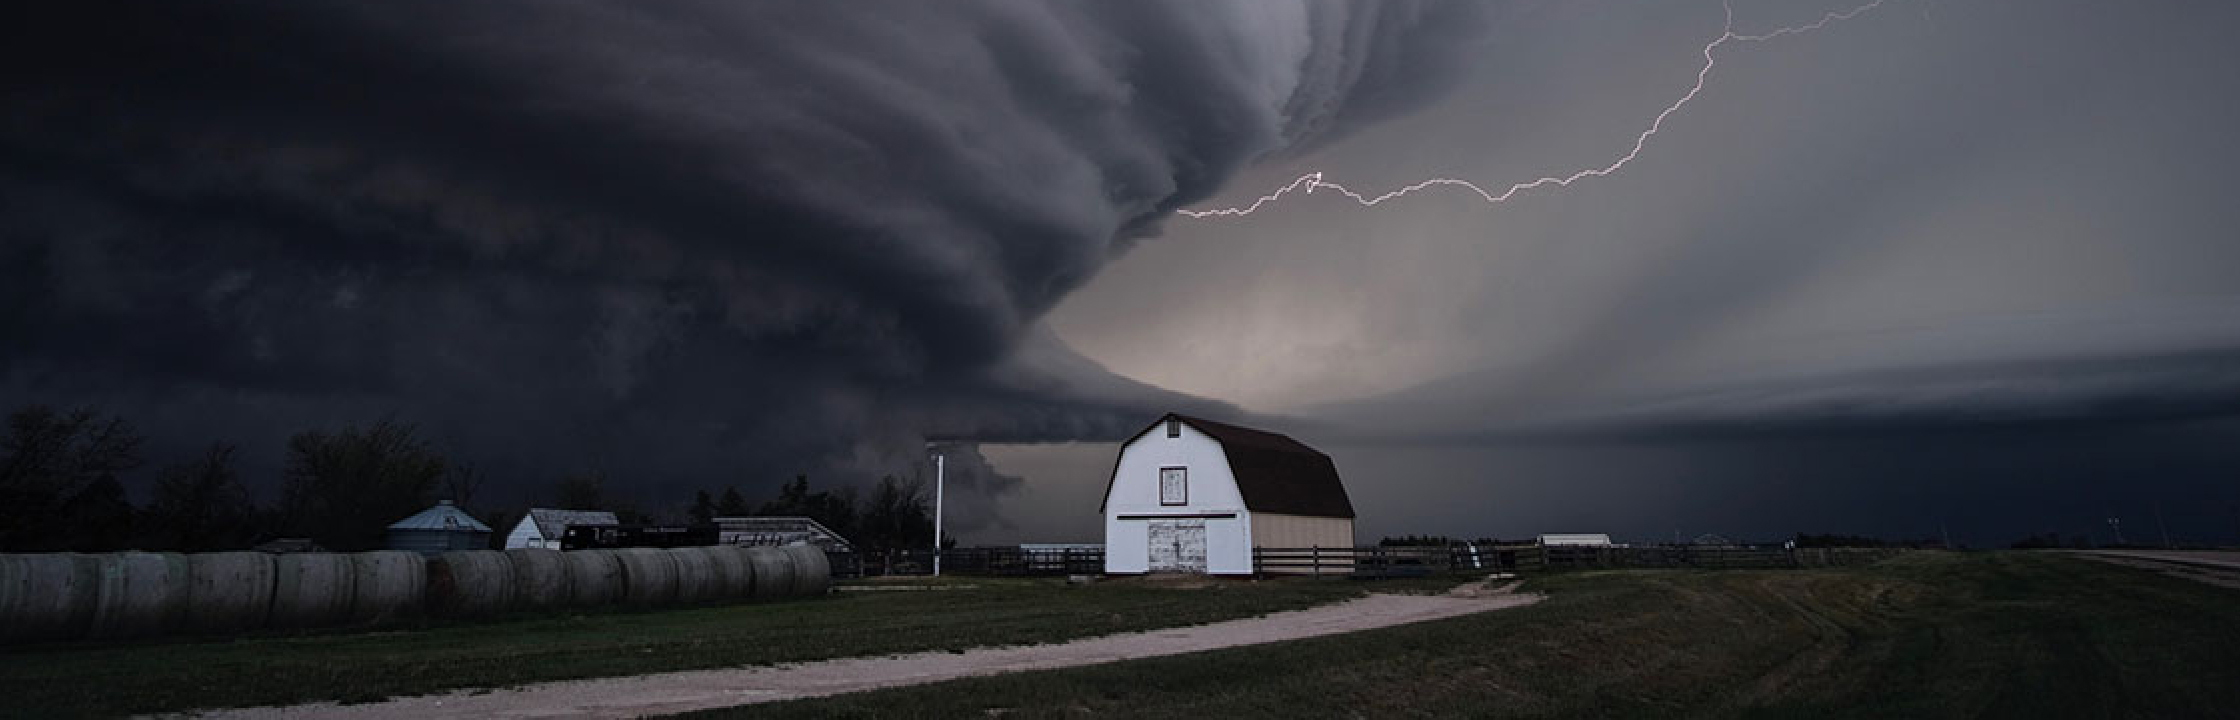 PHOTO - A supercell thunderstorm in Kansas - Mike Coniglio_NOAA NSSL